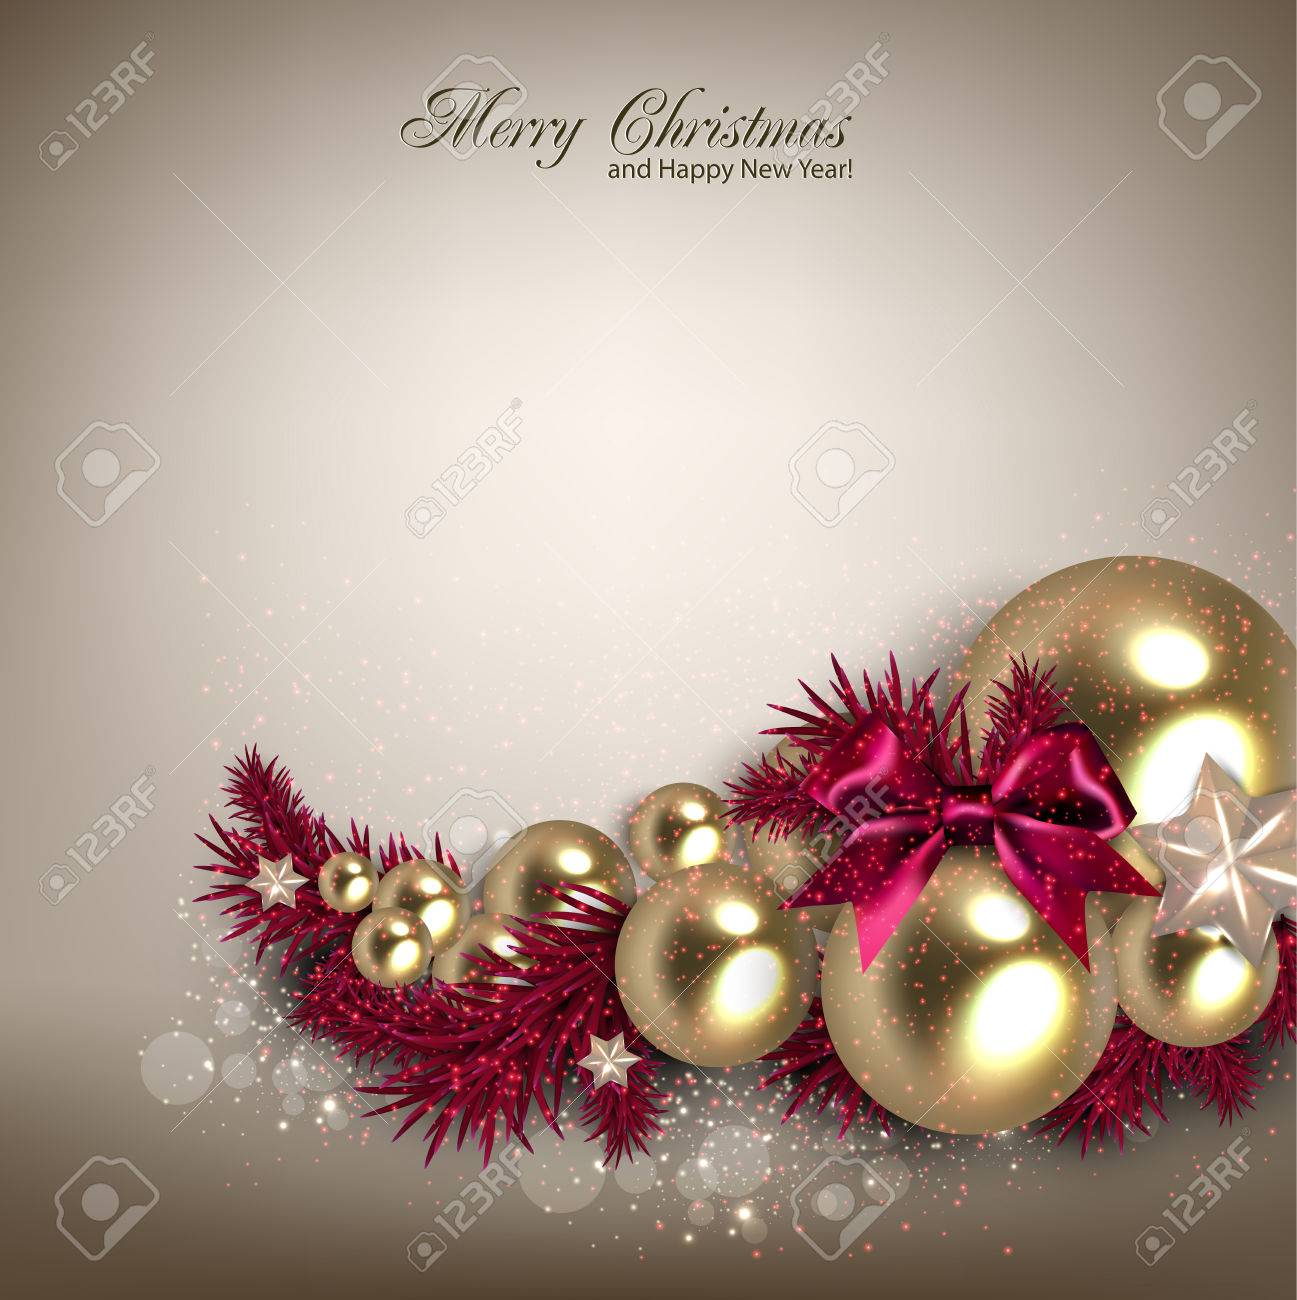 Elegant  background with Christmas garland. Vector illustration Stock Vector - 23196197